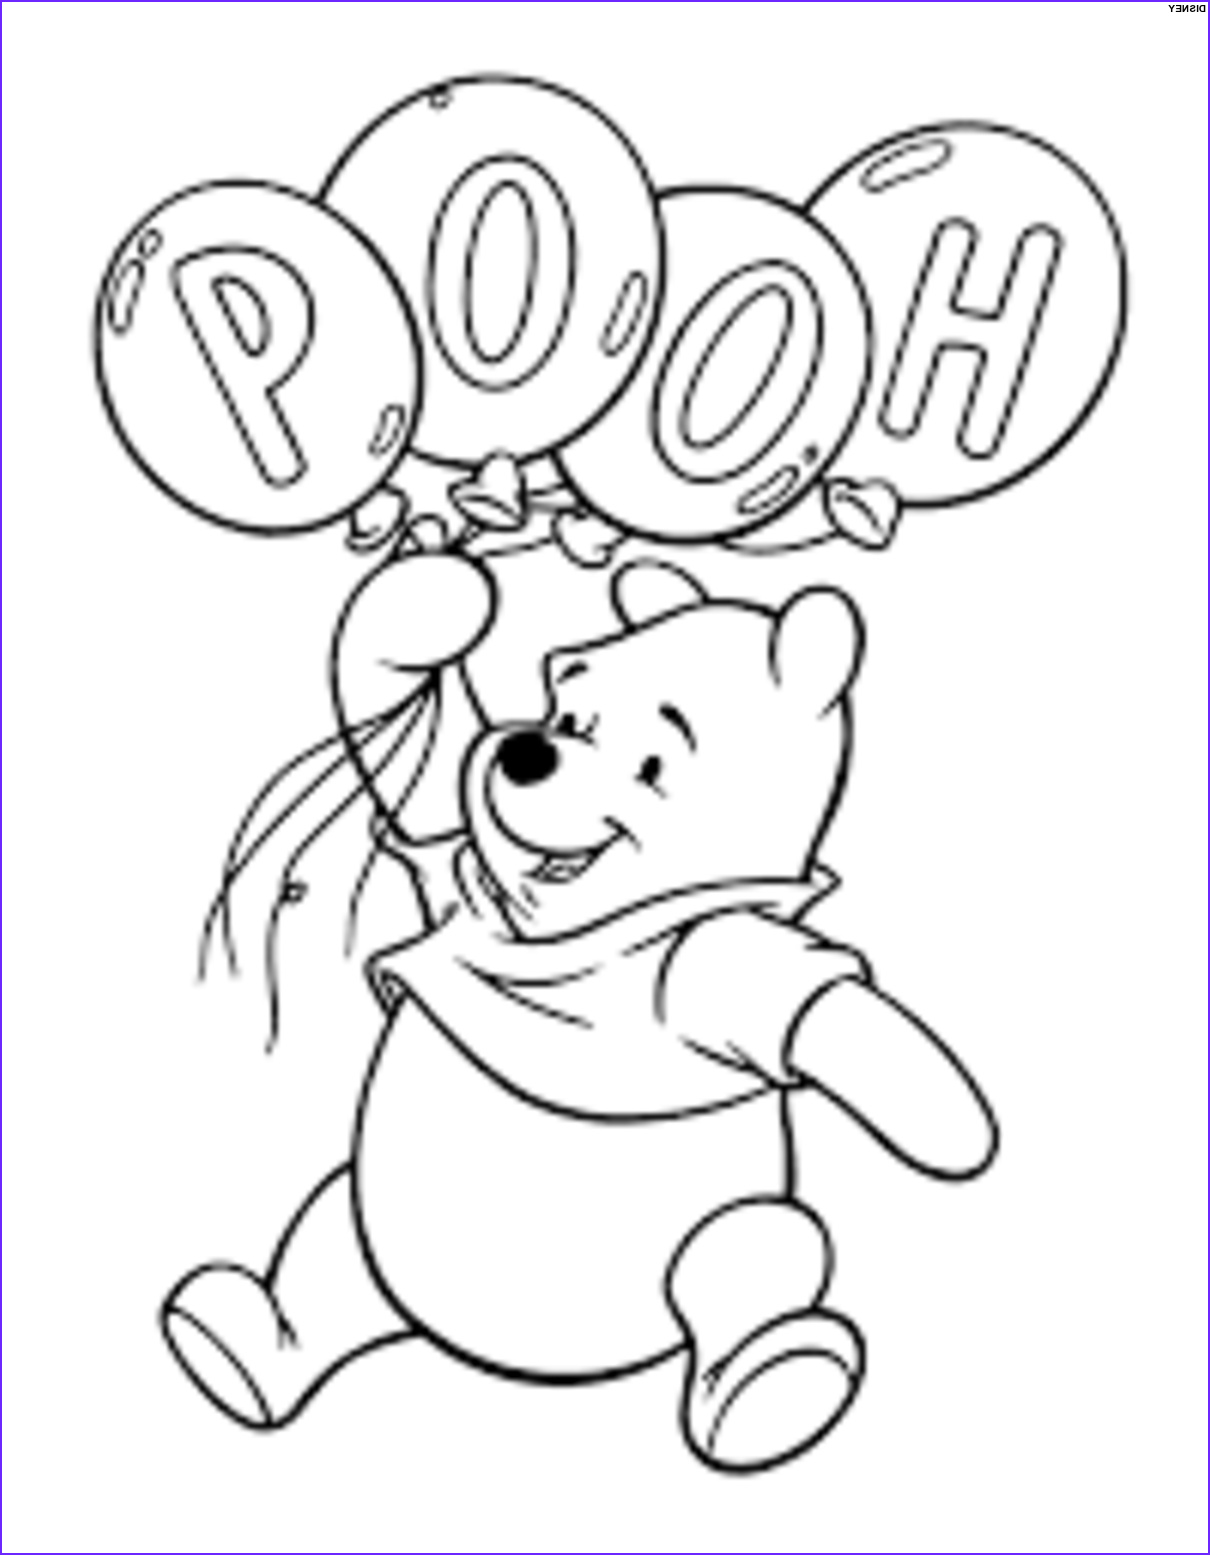 Character Coloring Page Beautiful Images Girl Cartoon Characters Coloring Pages Coloring Home